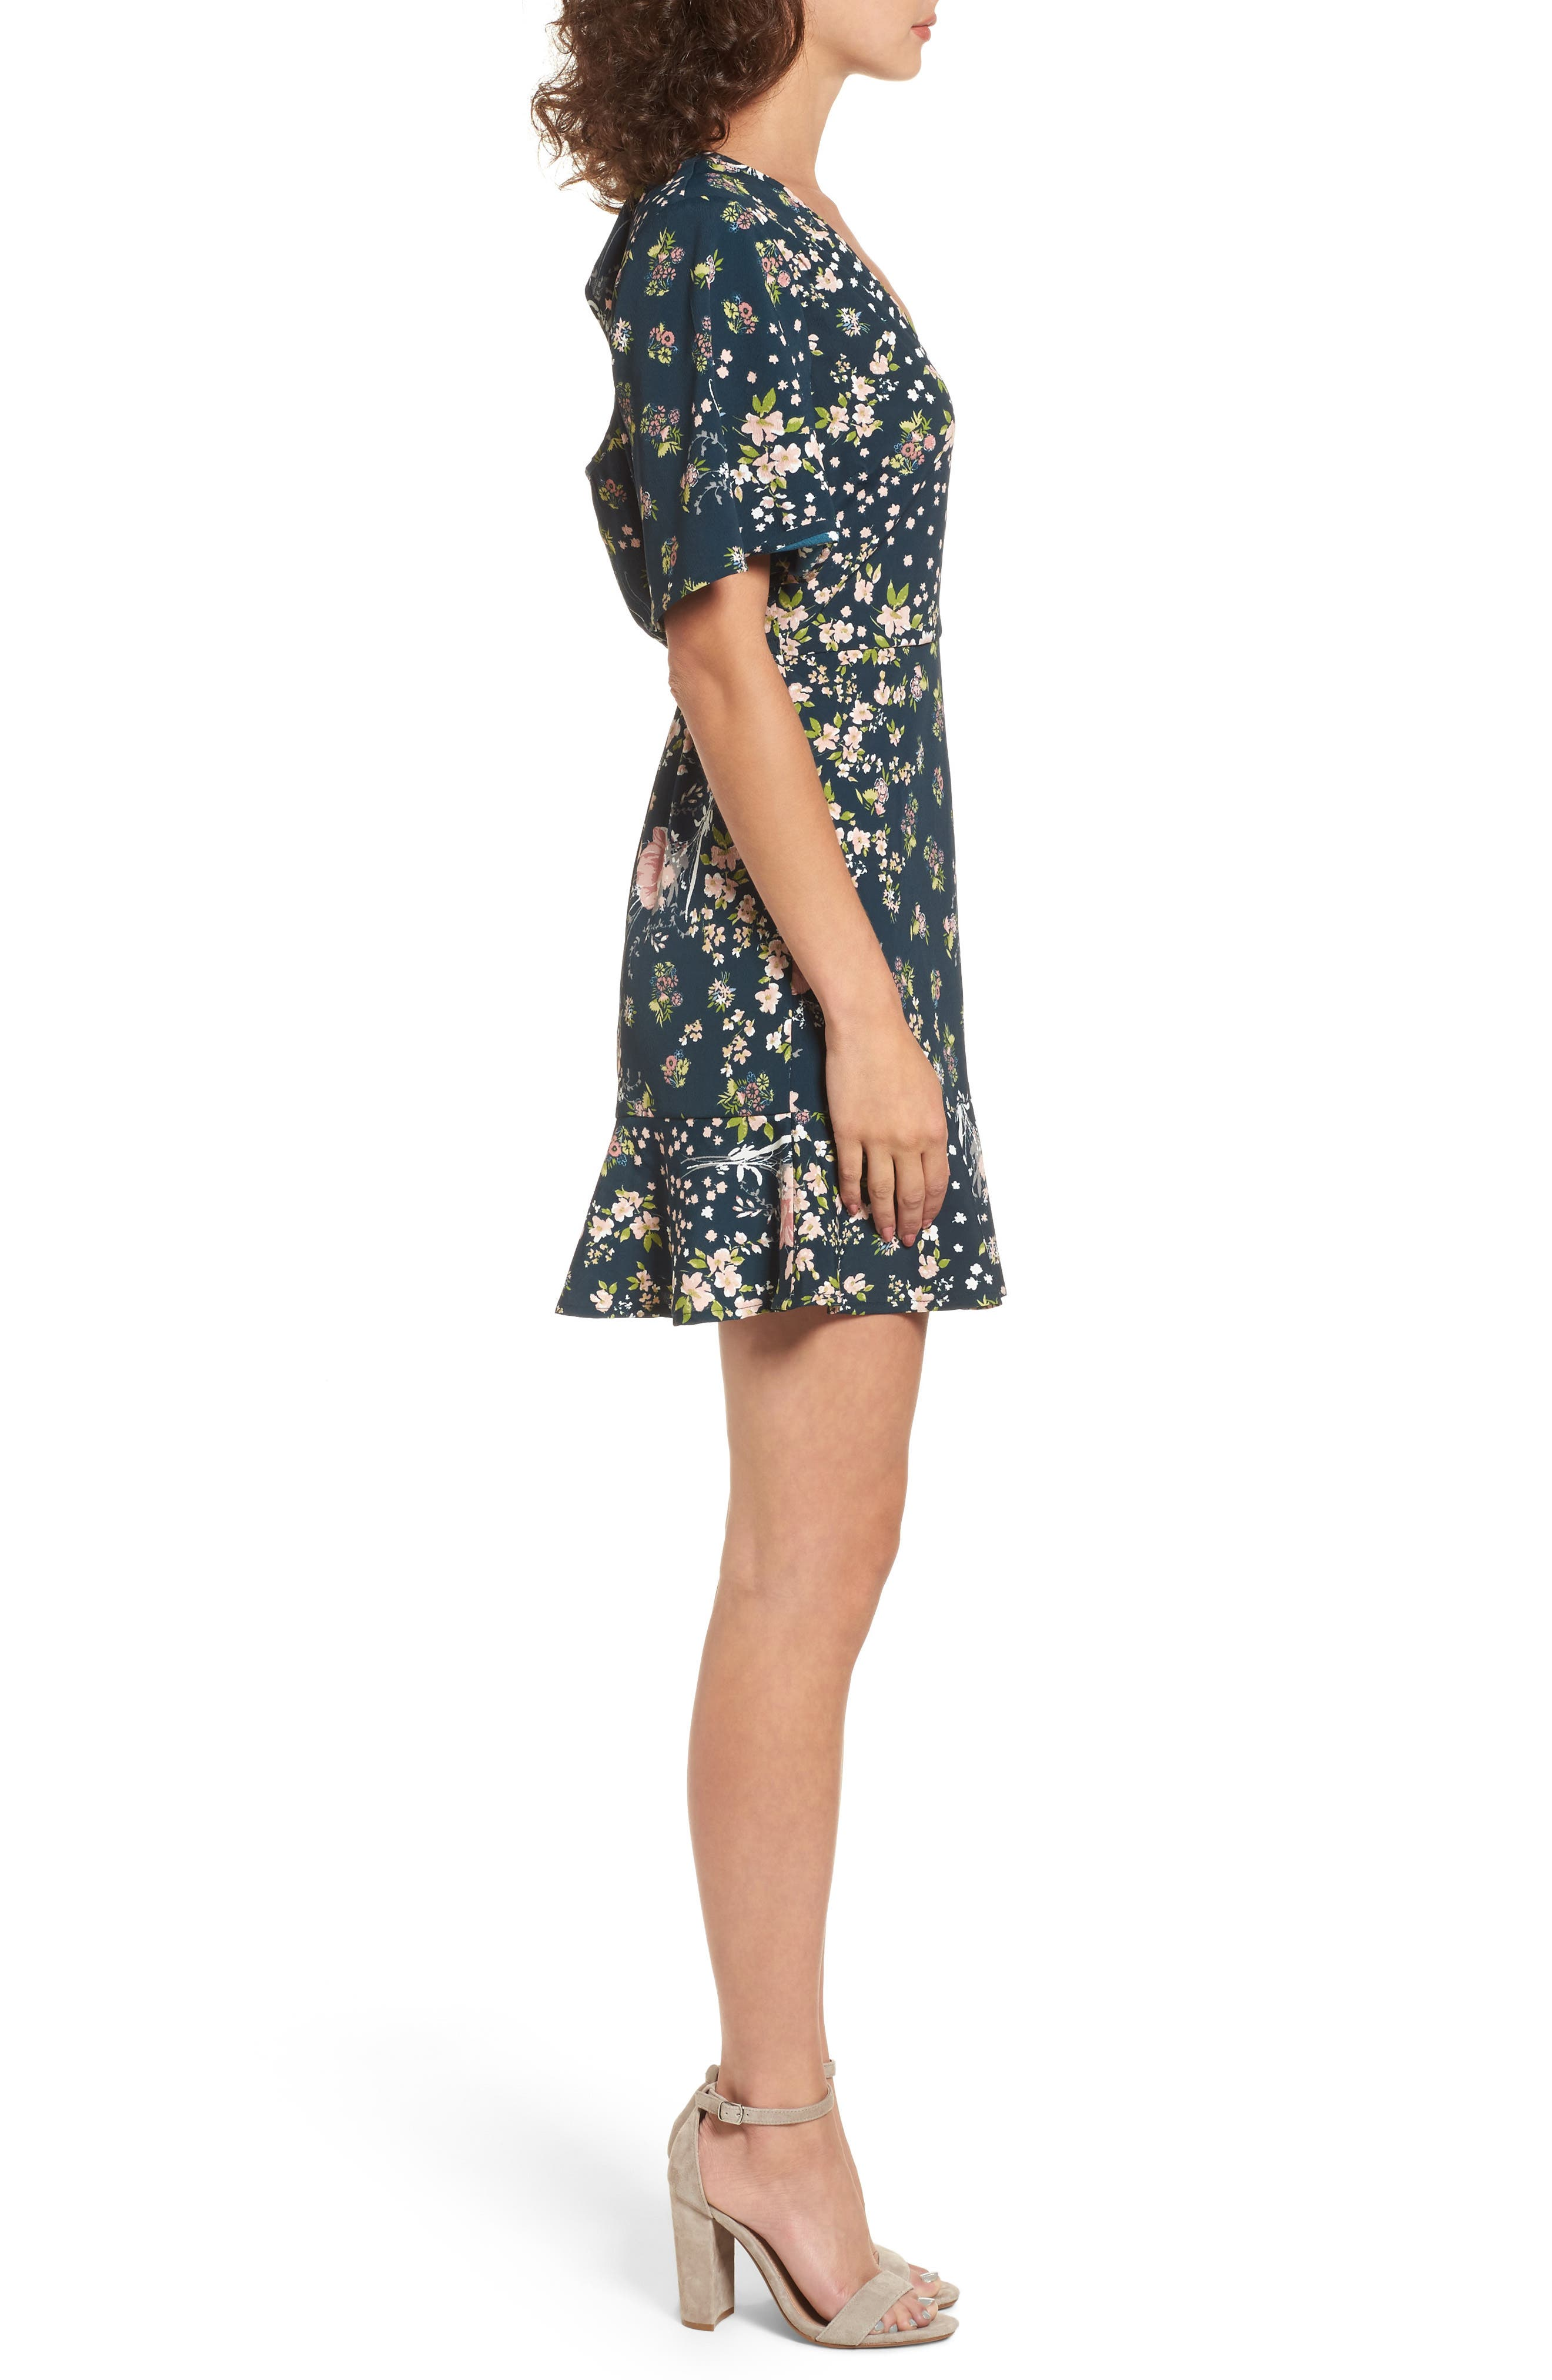 Moody Floral Dress,                             Alternate thumbnail 3, color,                             440